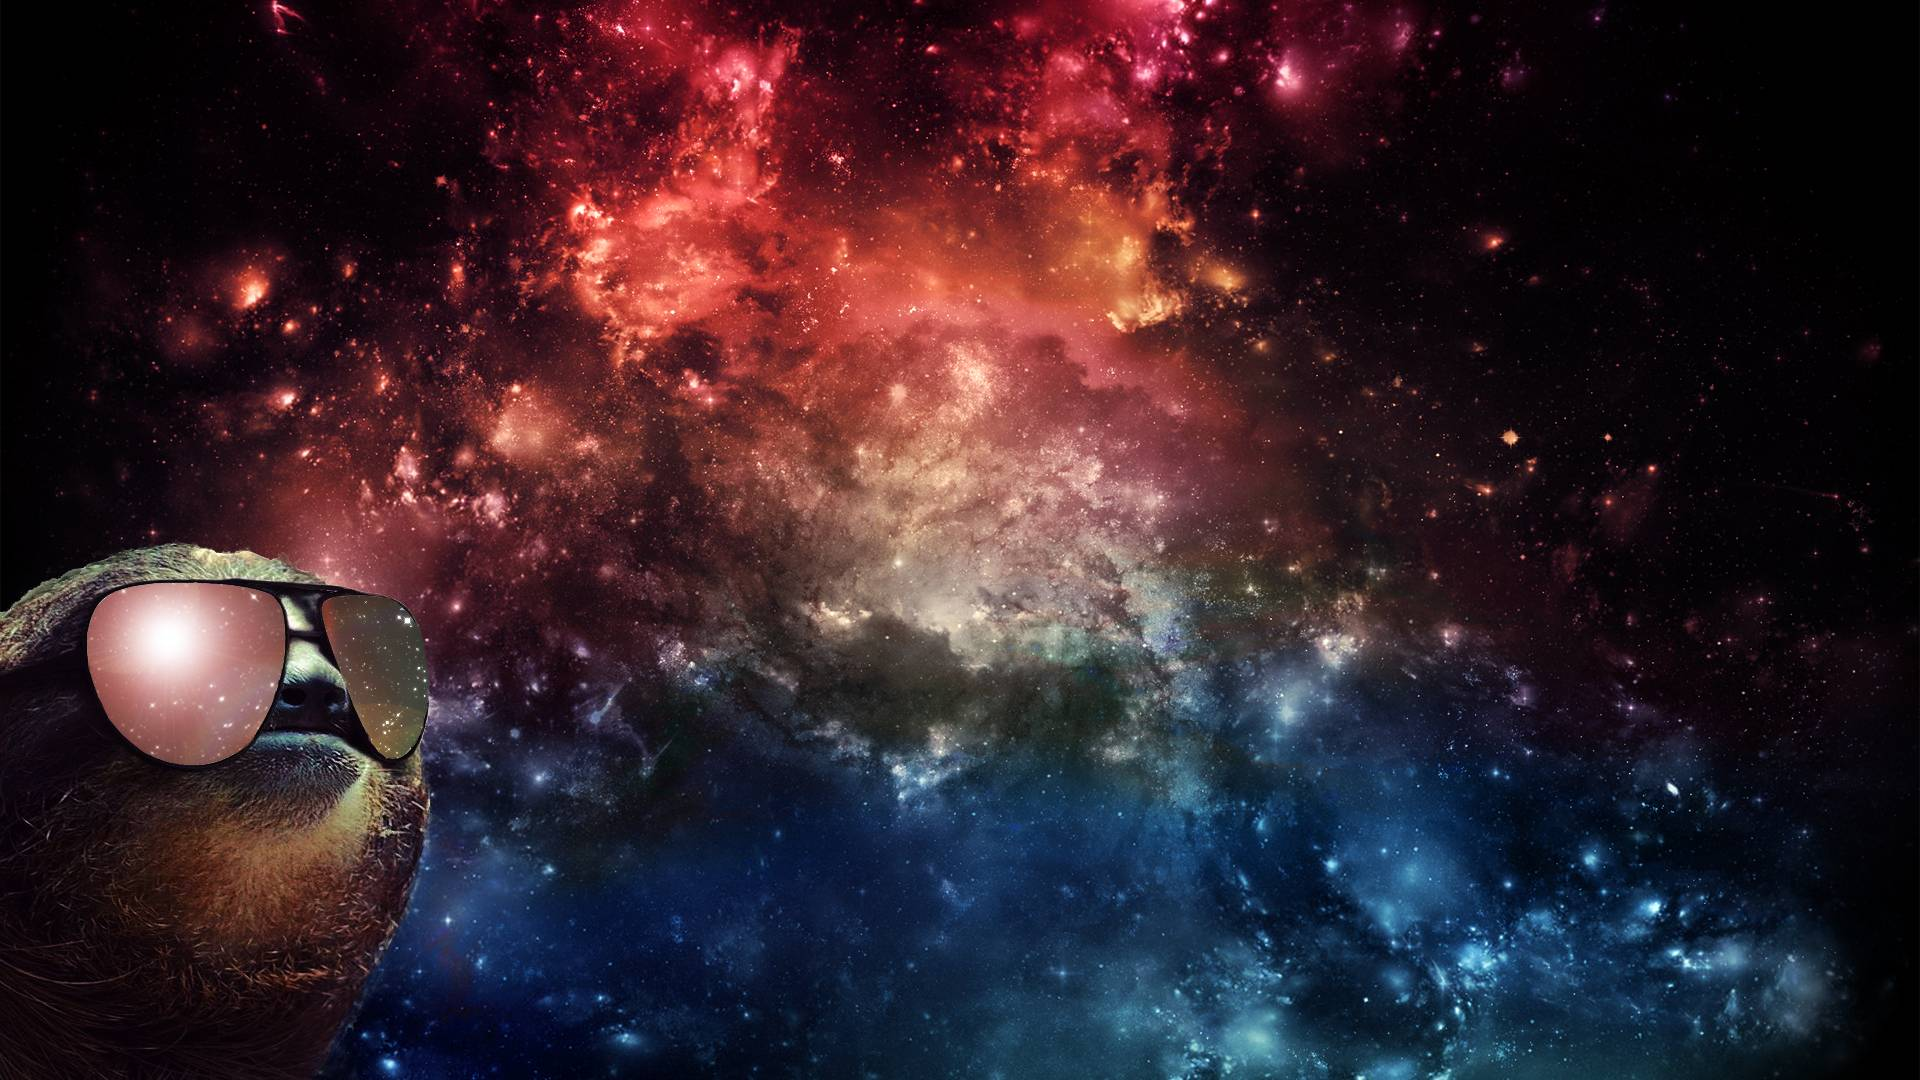 Space 1280 X 720 , HD Wallpaper & Backgrounds